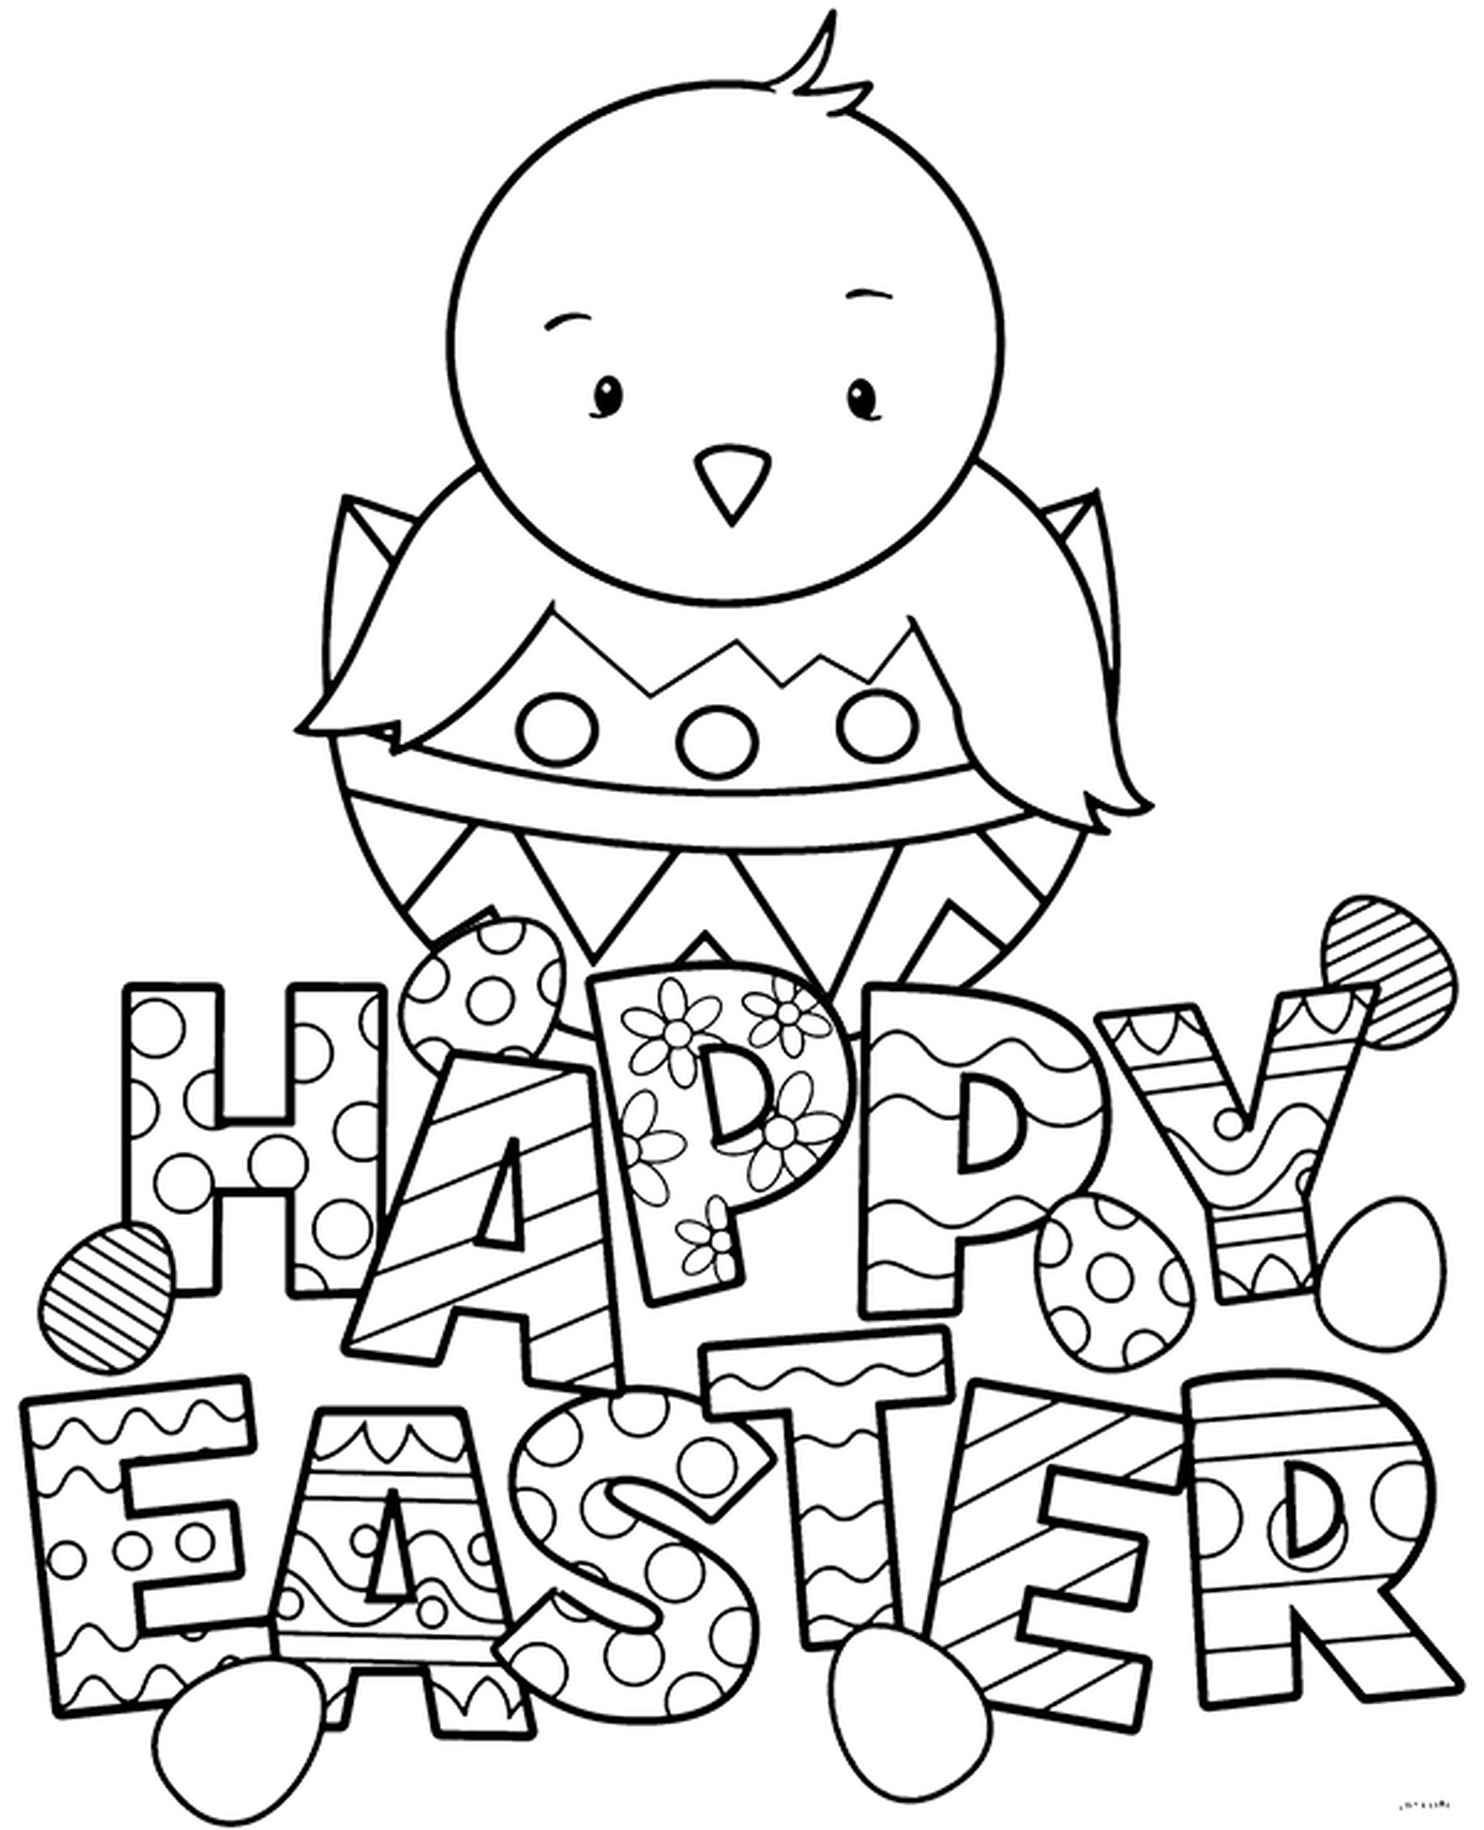 Happy Easter Chicken Coloring Page